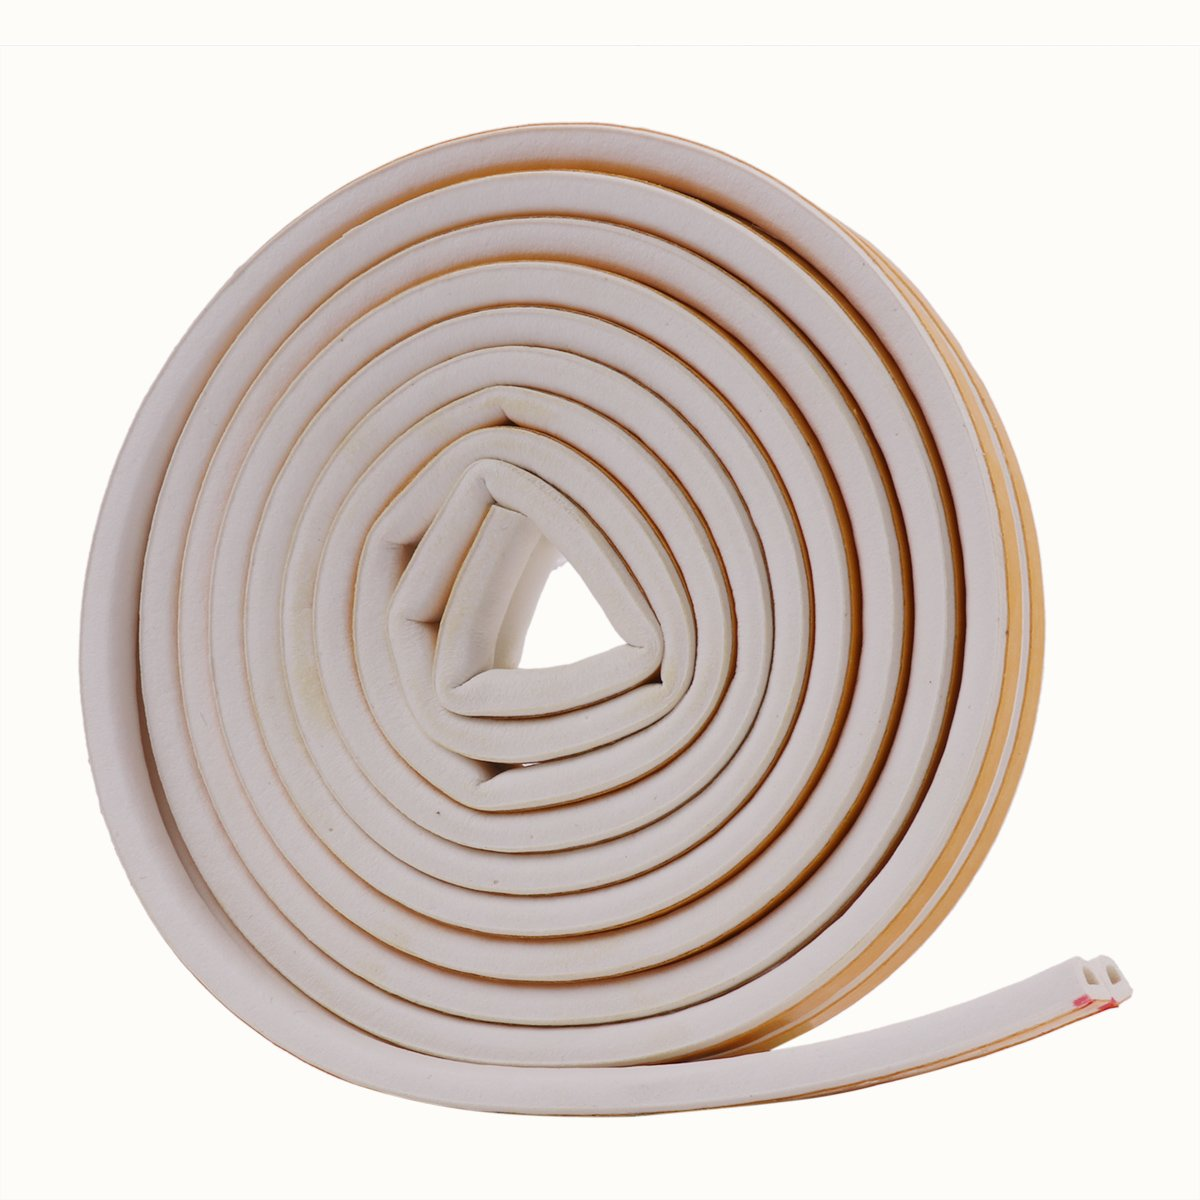 Freebily Insulation Doors and Windows Soundproofing D Type Seal Strip Collision Avoidance Rubber Self-Adhesive Seal Weatherstripping Black 5Mï ¼ ˆ 2.5*2ï ¼ ‰